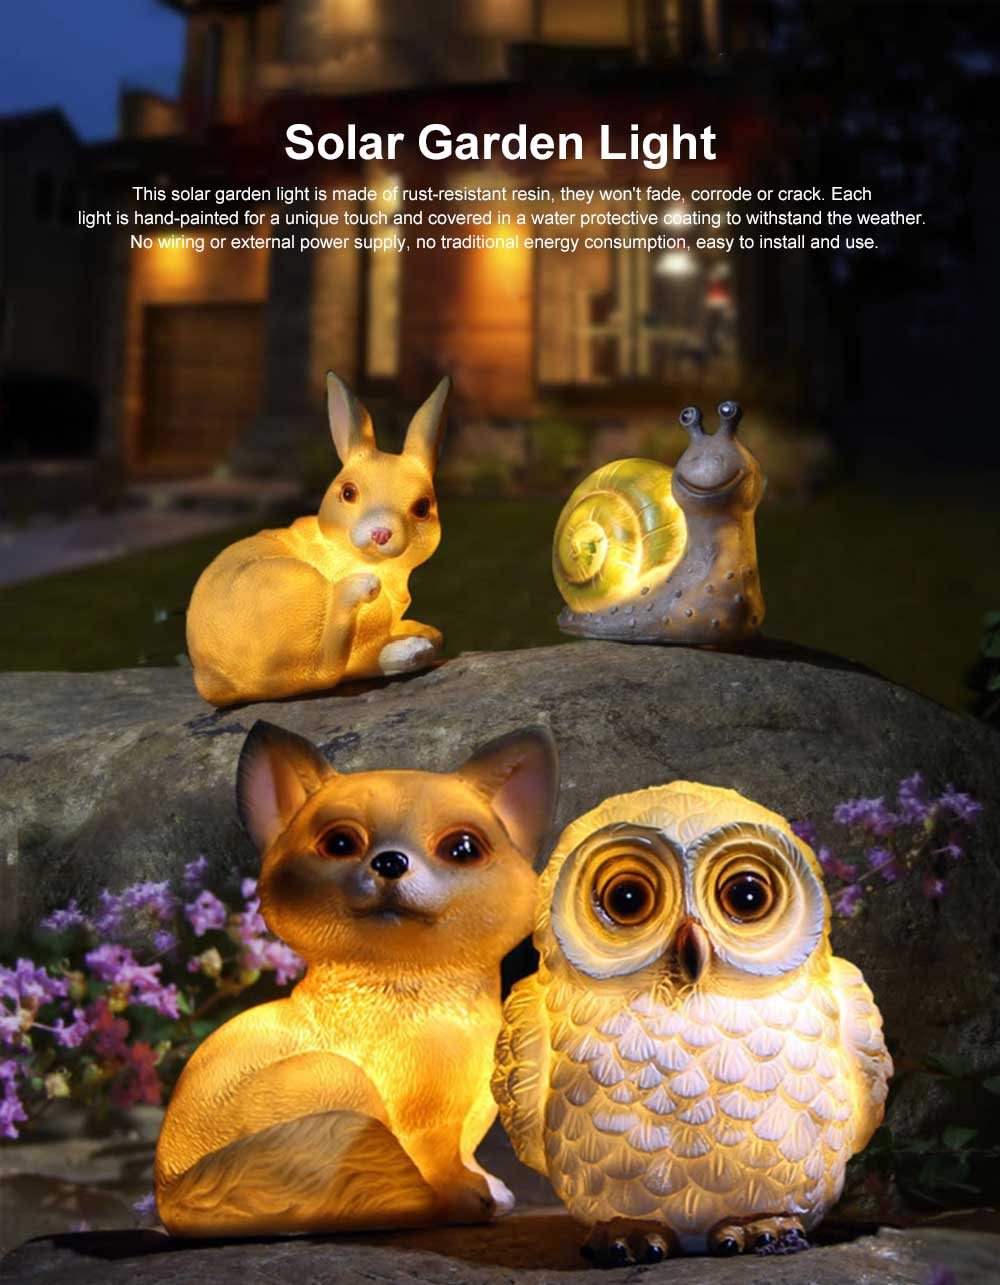 Solar Garden Light Animal LED Lamp Waterproof Outdoor Lights Ornament for Garden, Lawn, Aisle, Porch, Courtyard or Tent 0